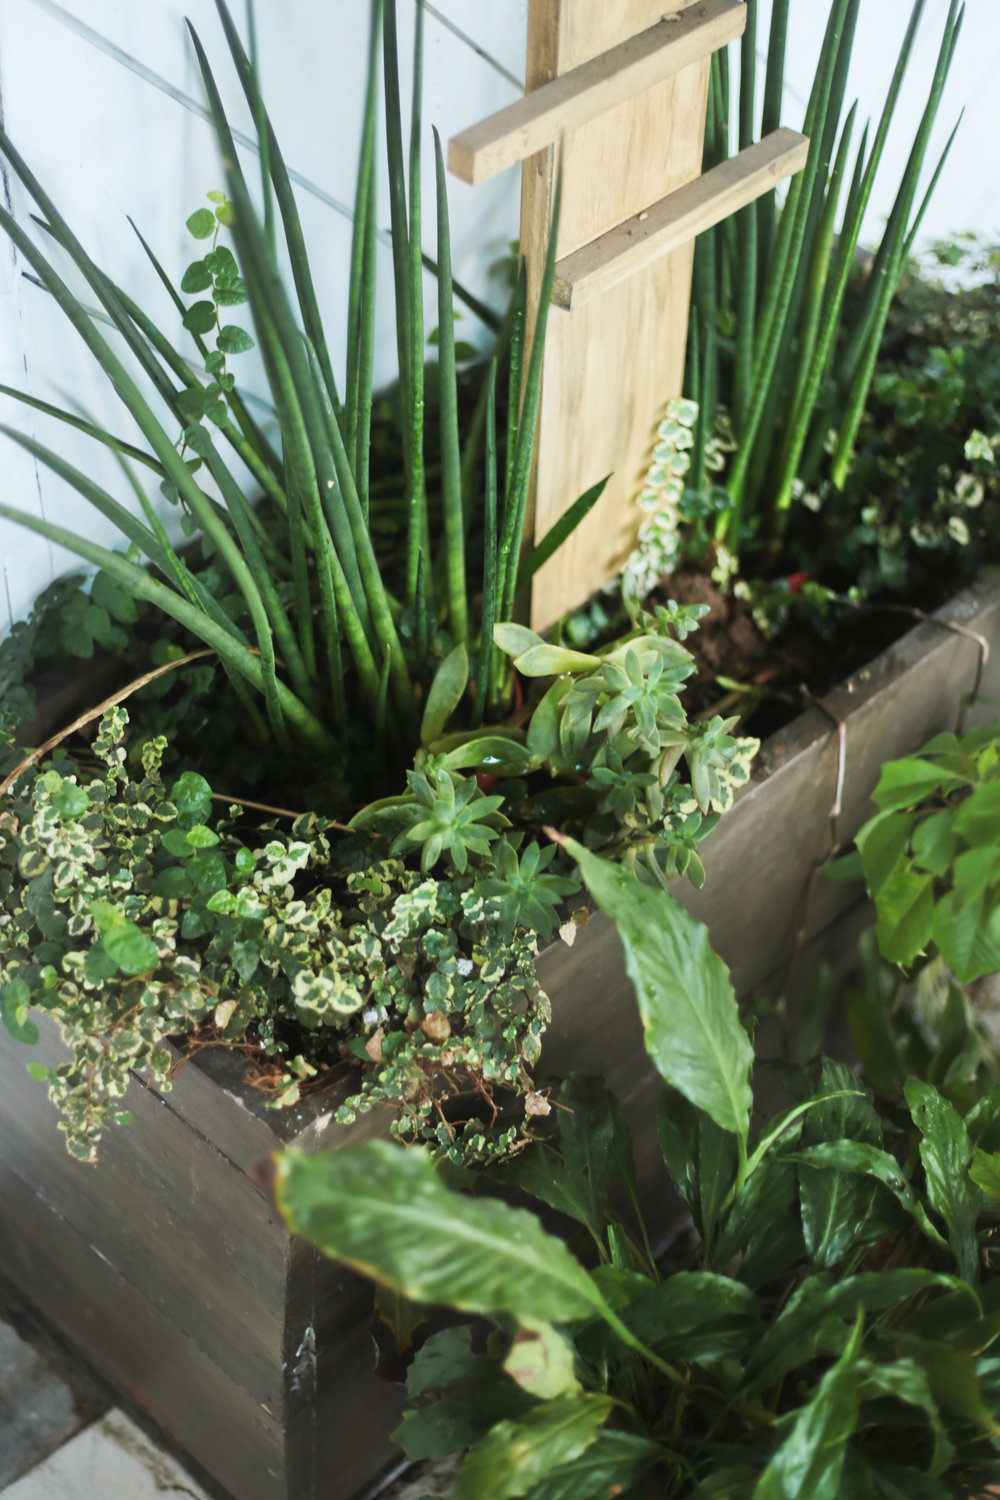 THE ABUNDANCE OF PLANTS PROMOTE CLEAN AIR -